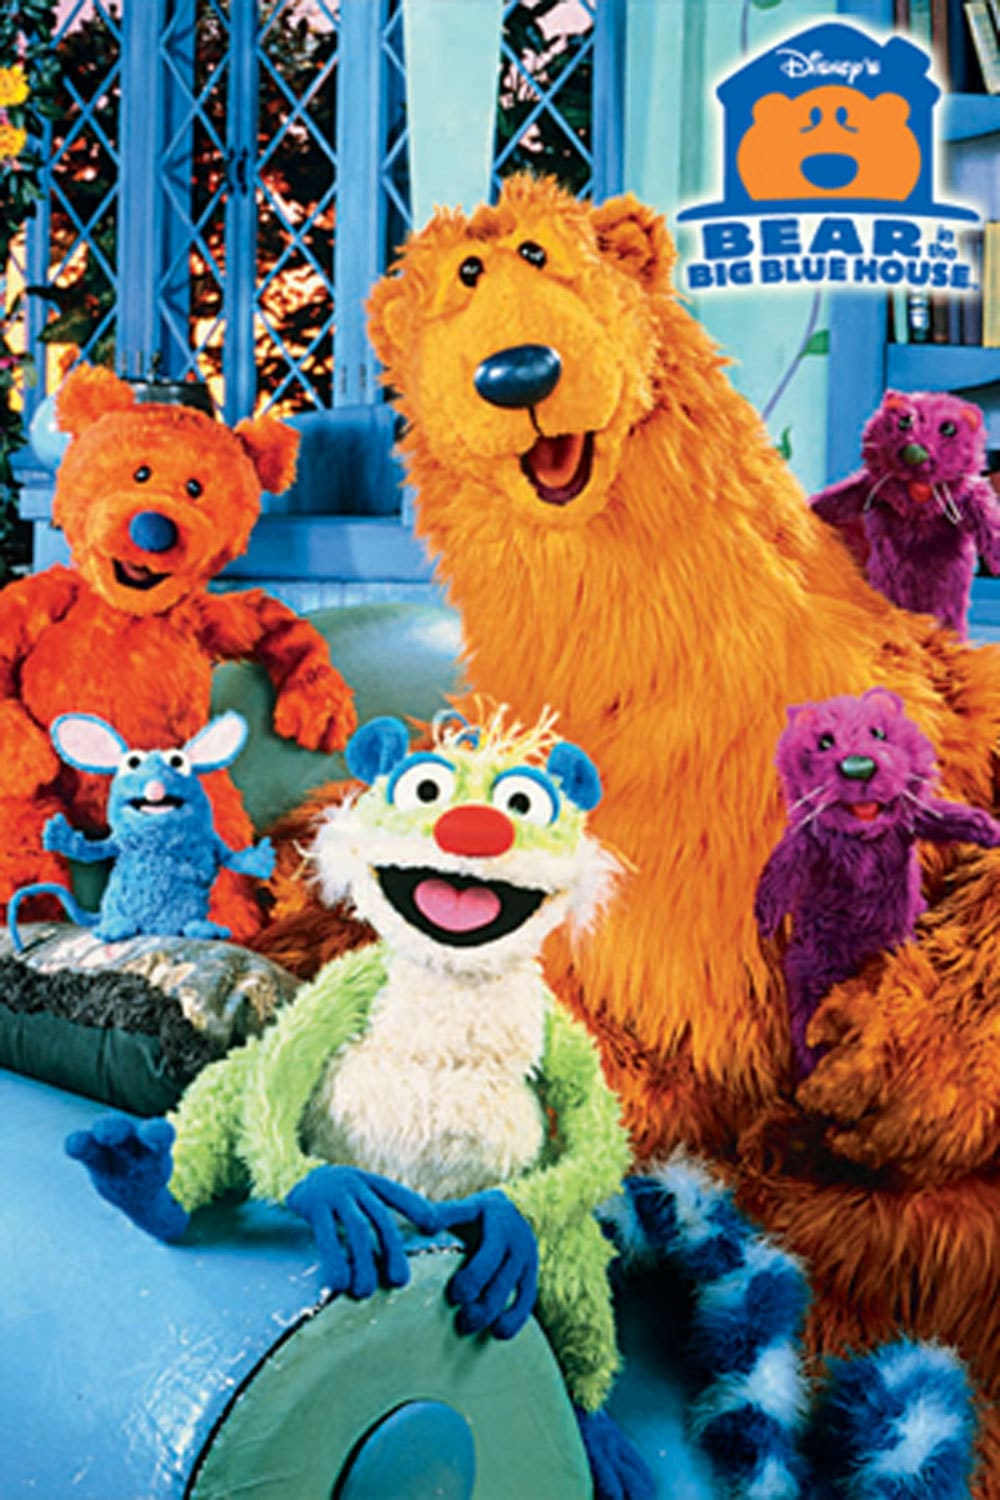 Bear in the Big Blue House Products